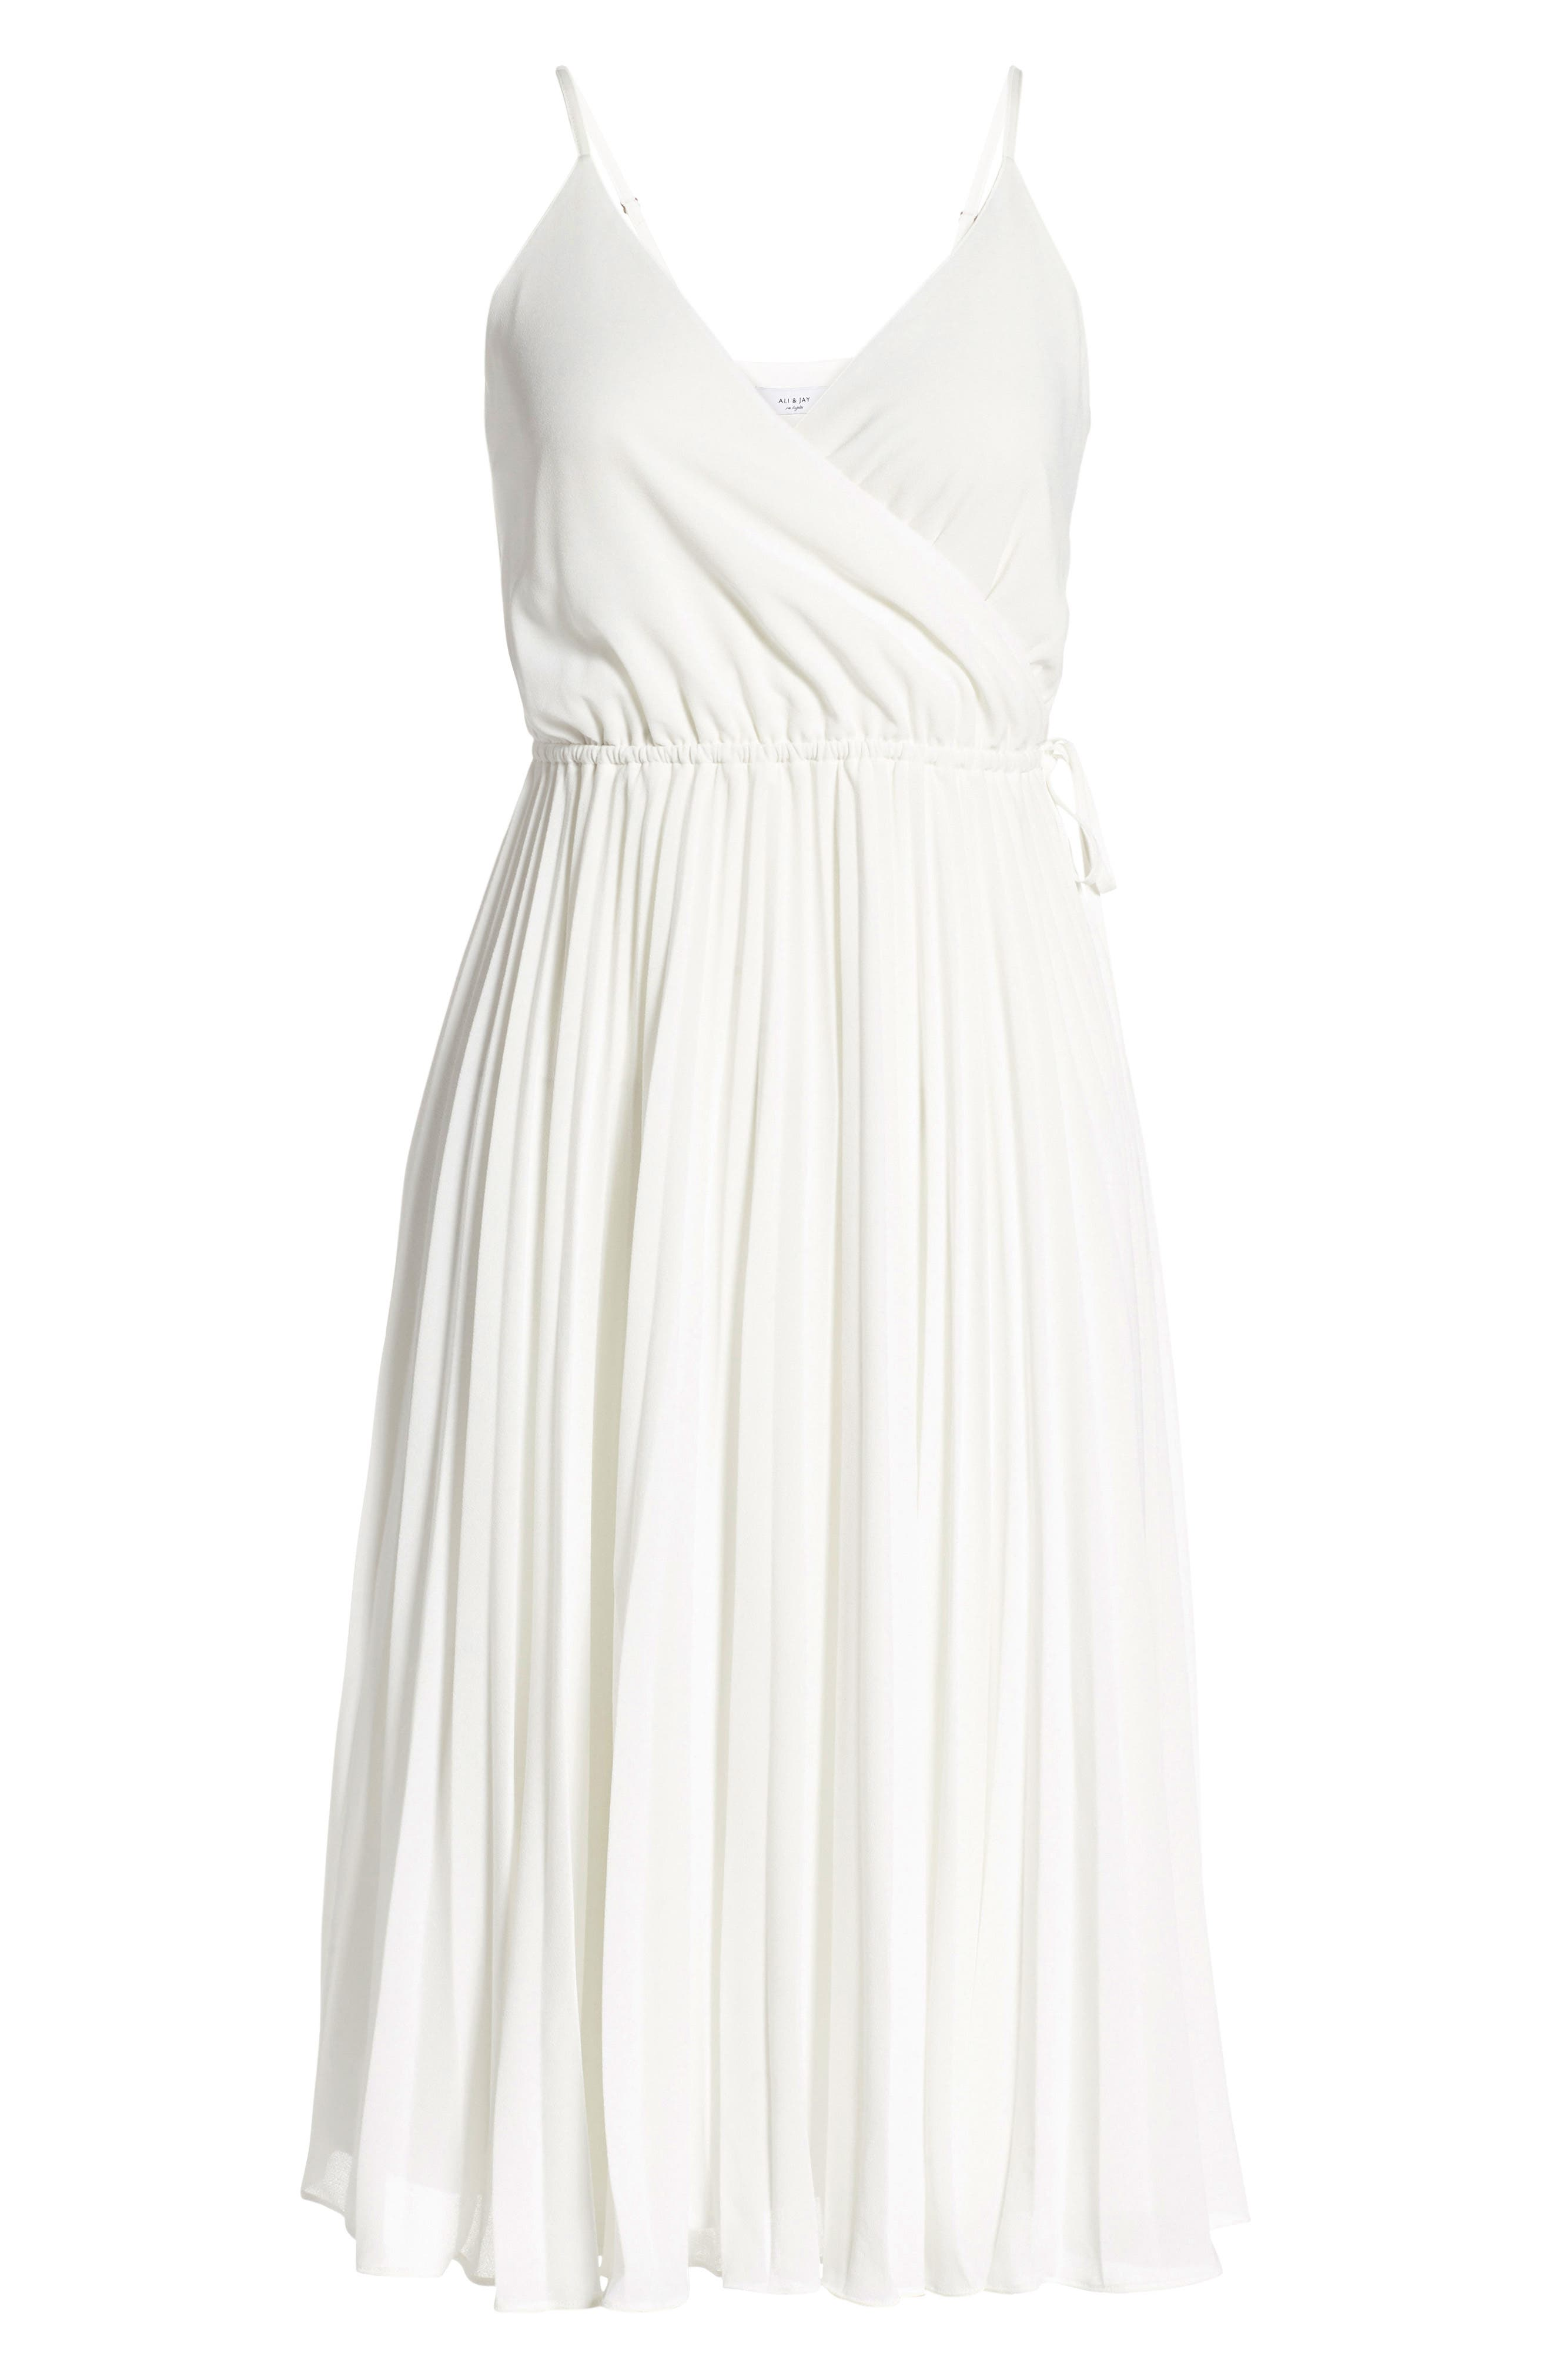 Lily Pond Fit & Flare Dress,                             Alternate thumbnail 7, color,                             WHITE